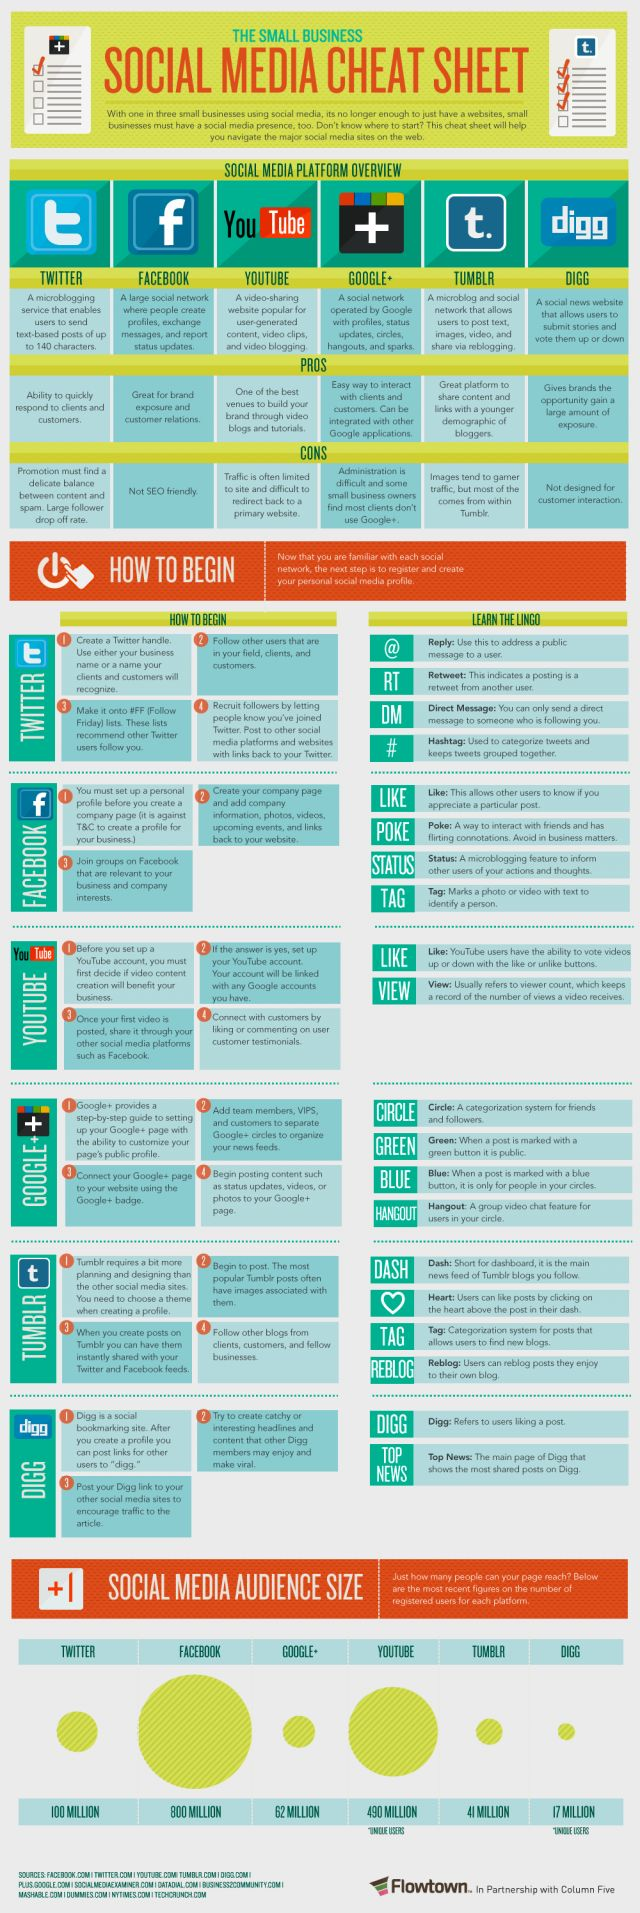 Small Business Social Media Cheat Sheet